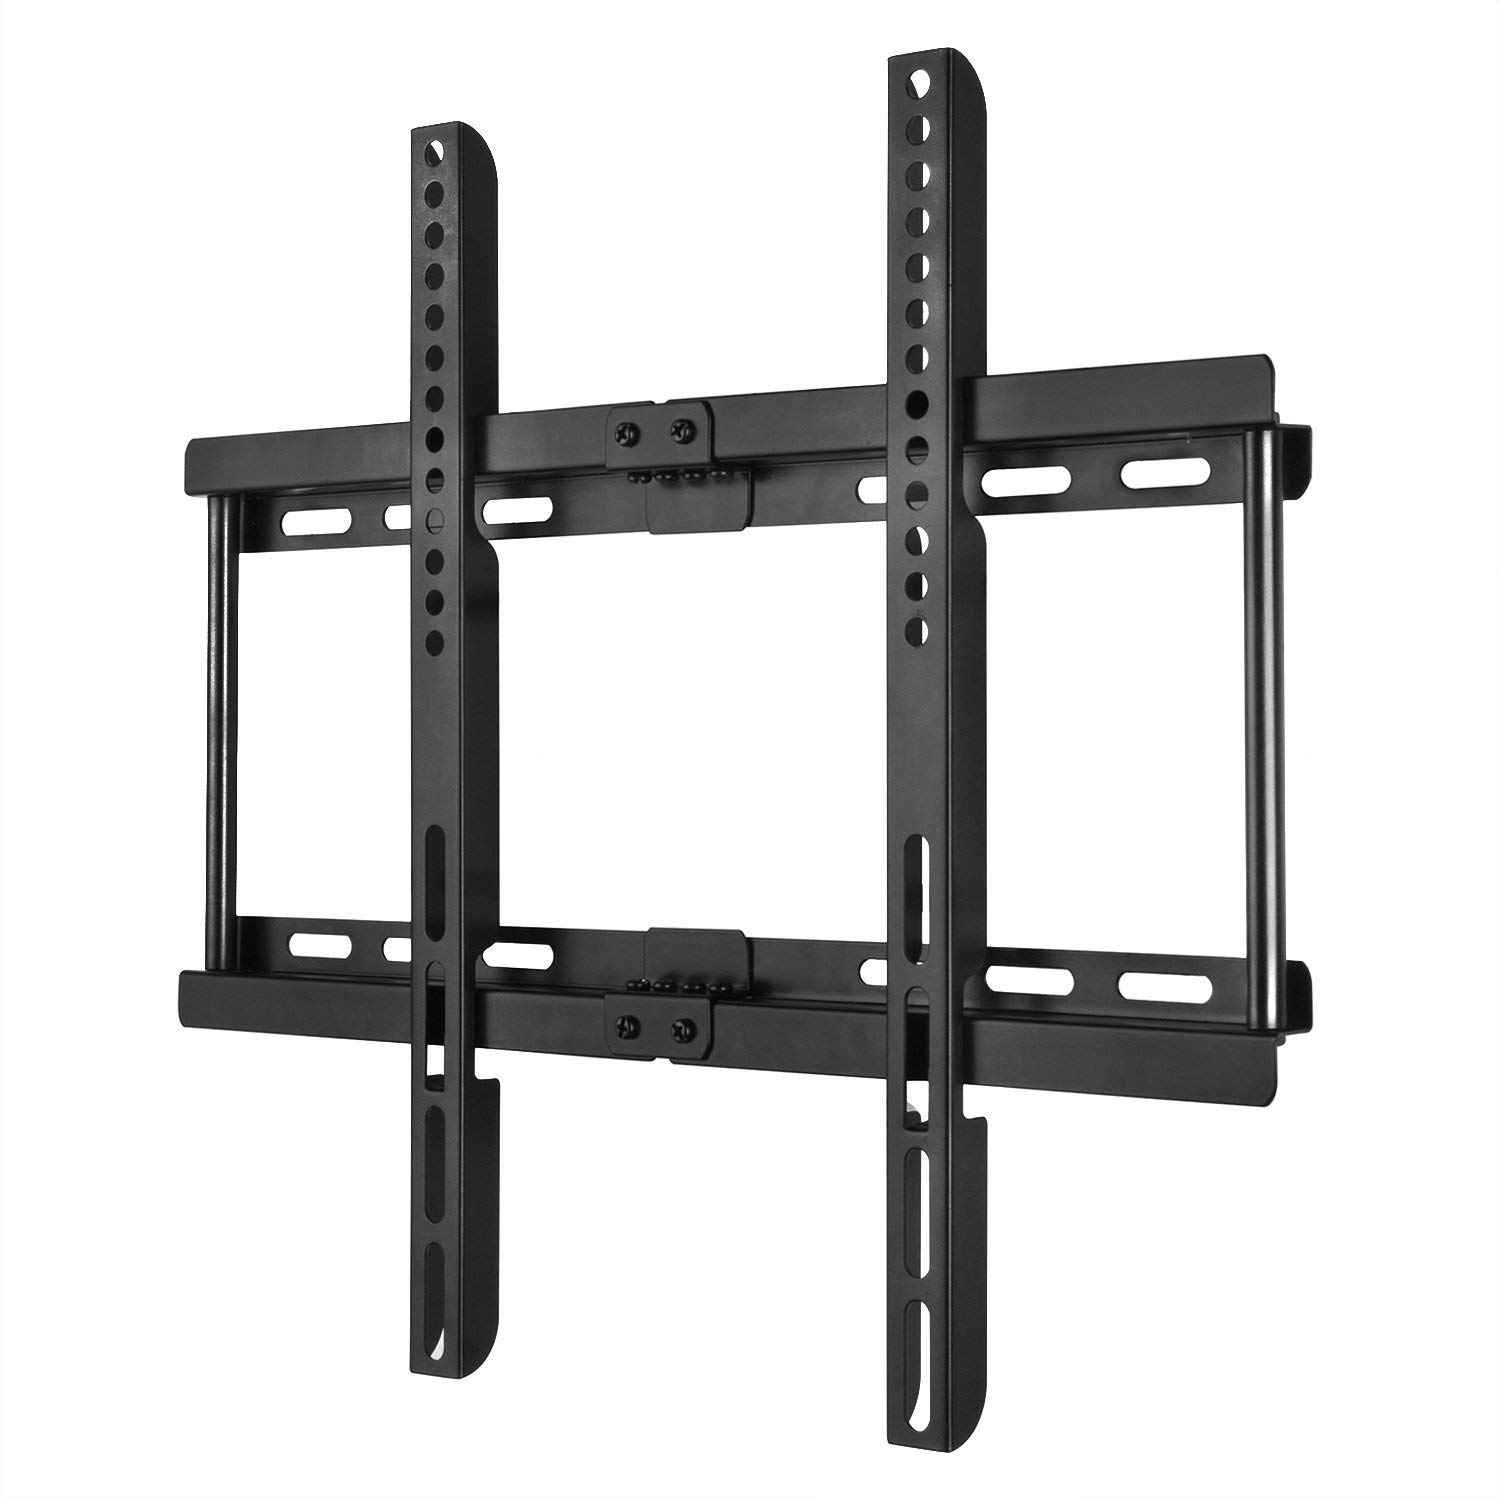 Happyjoy Ultra Slim TV Wall Mount Bracket for 23-55 Inch Flat LCD LED Plasma HDTV Smart TV, Max VESA 400x400mm, Bubble Level Included by Happyjoy